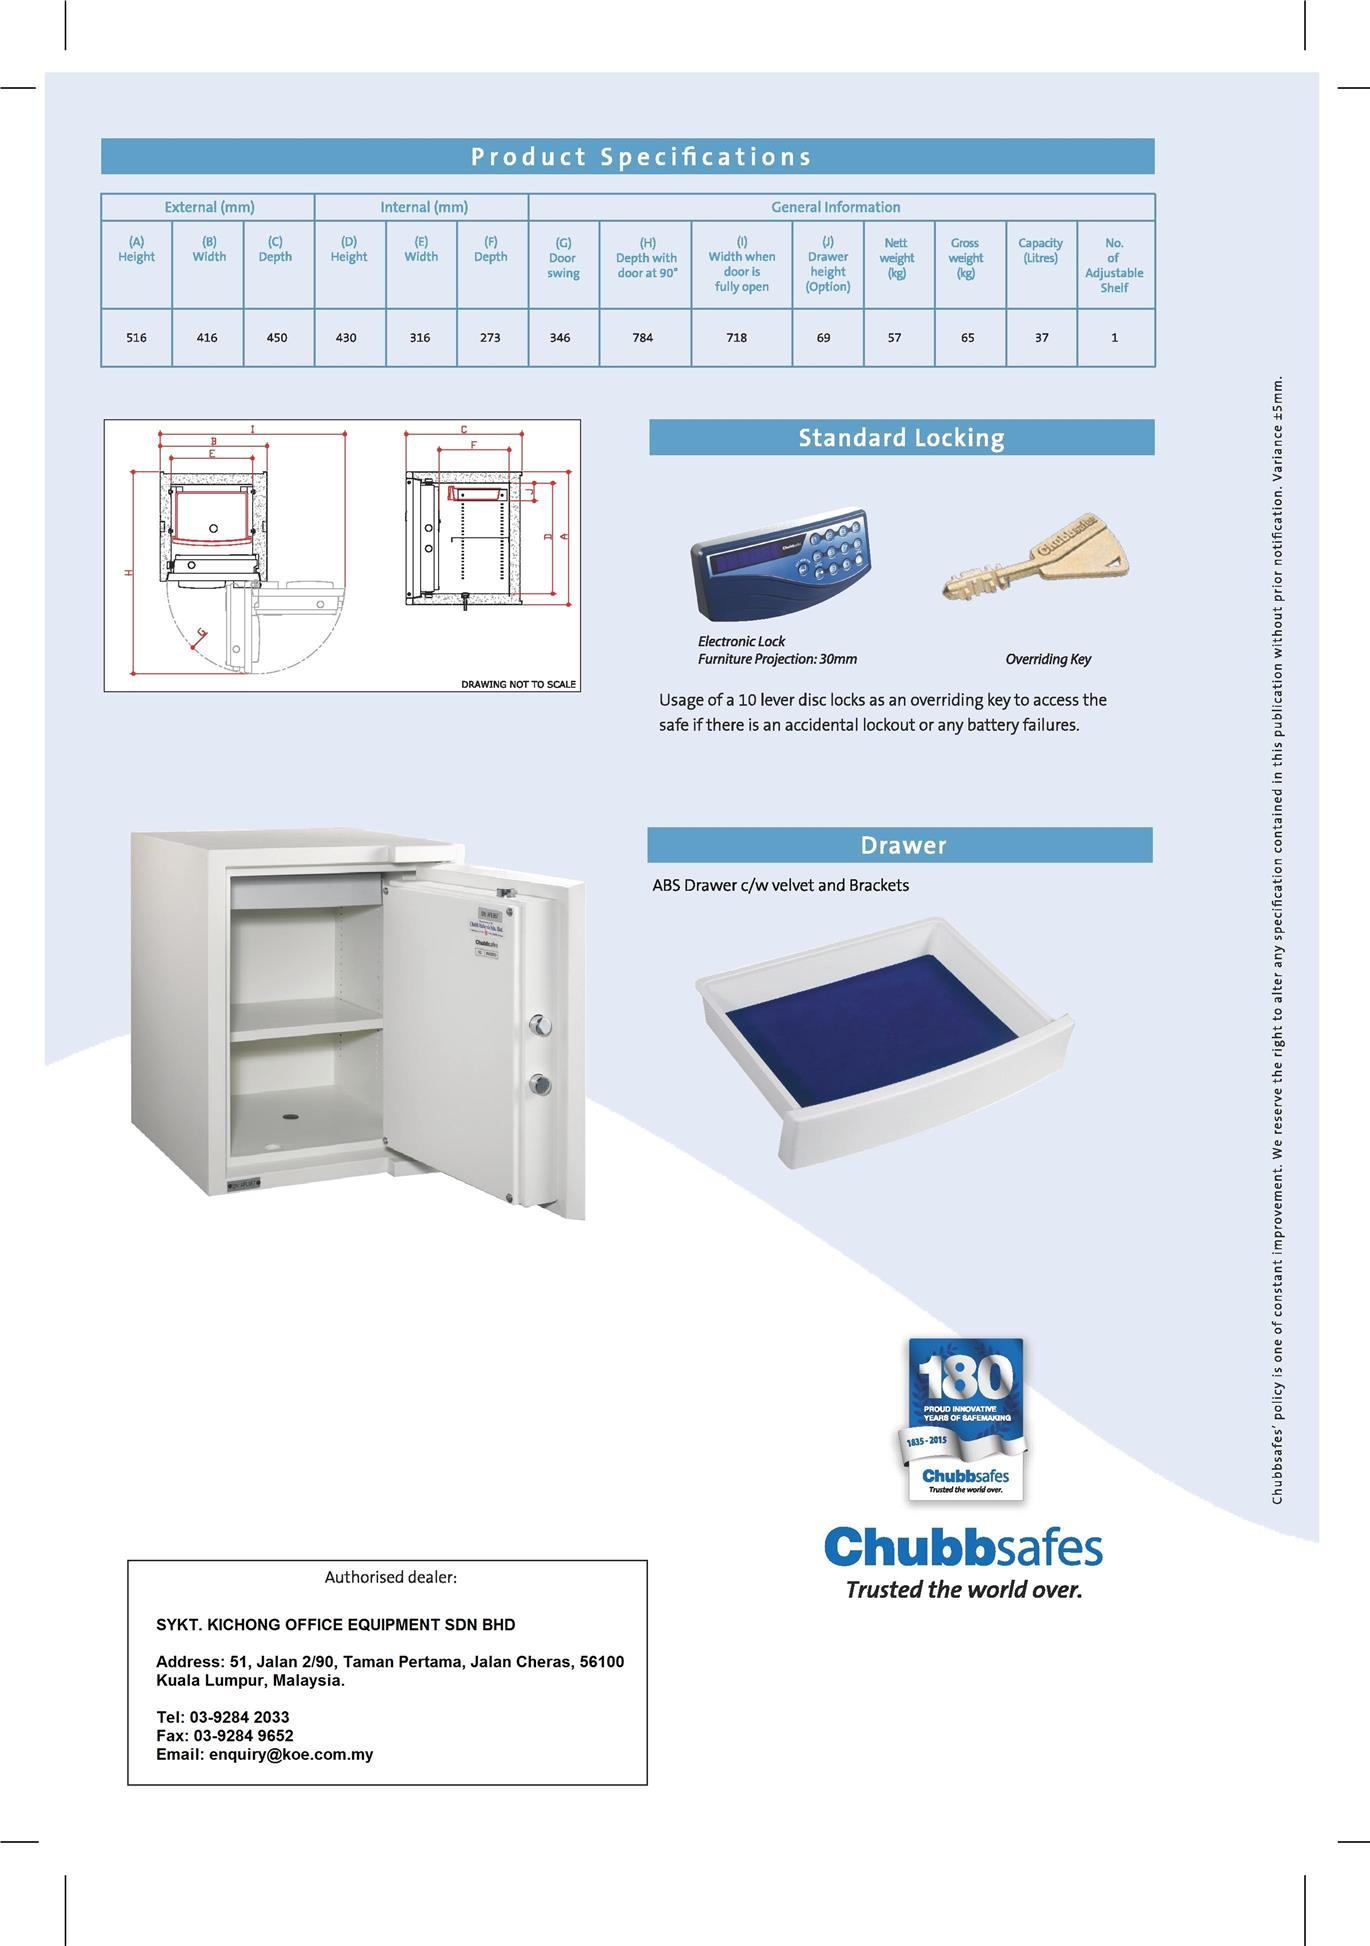 Chubbsafes Electronic Home Safe (57kg)